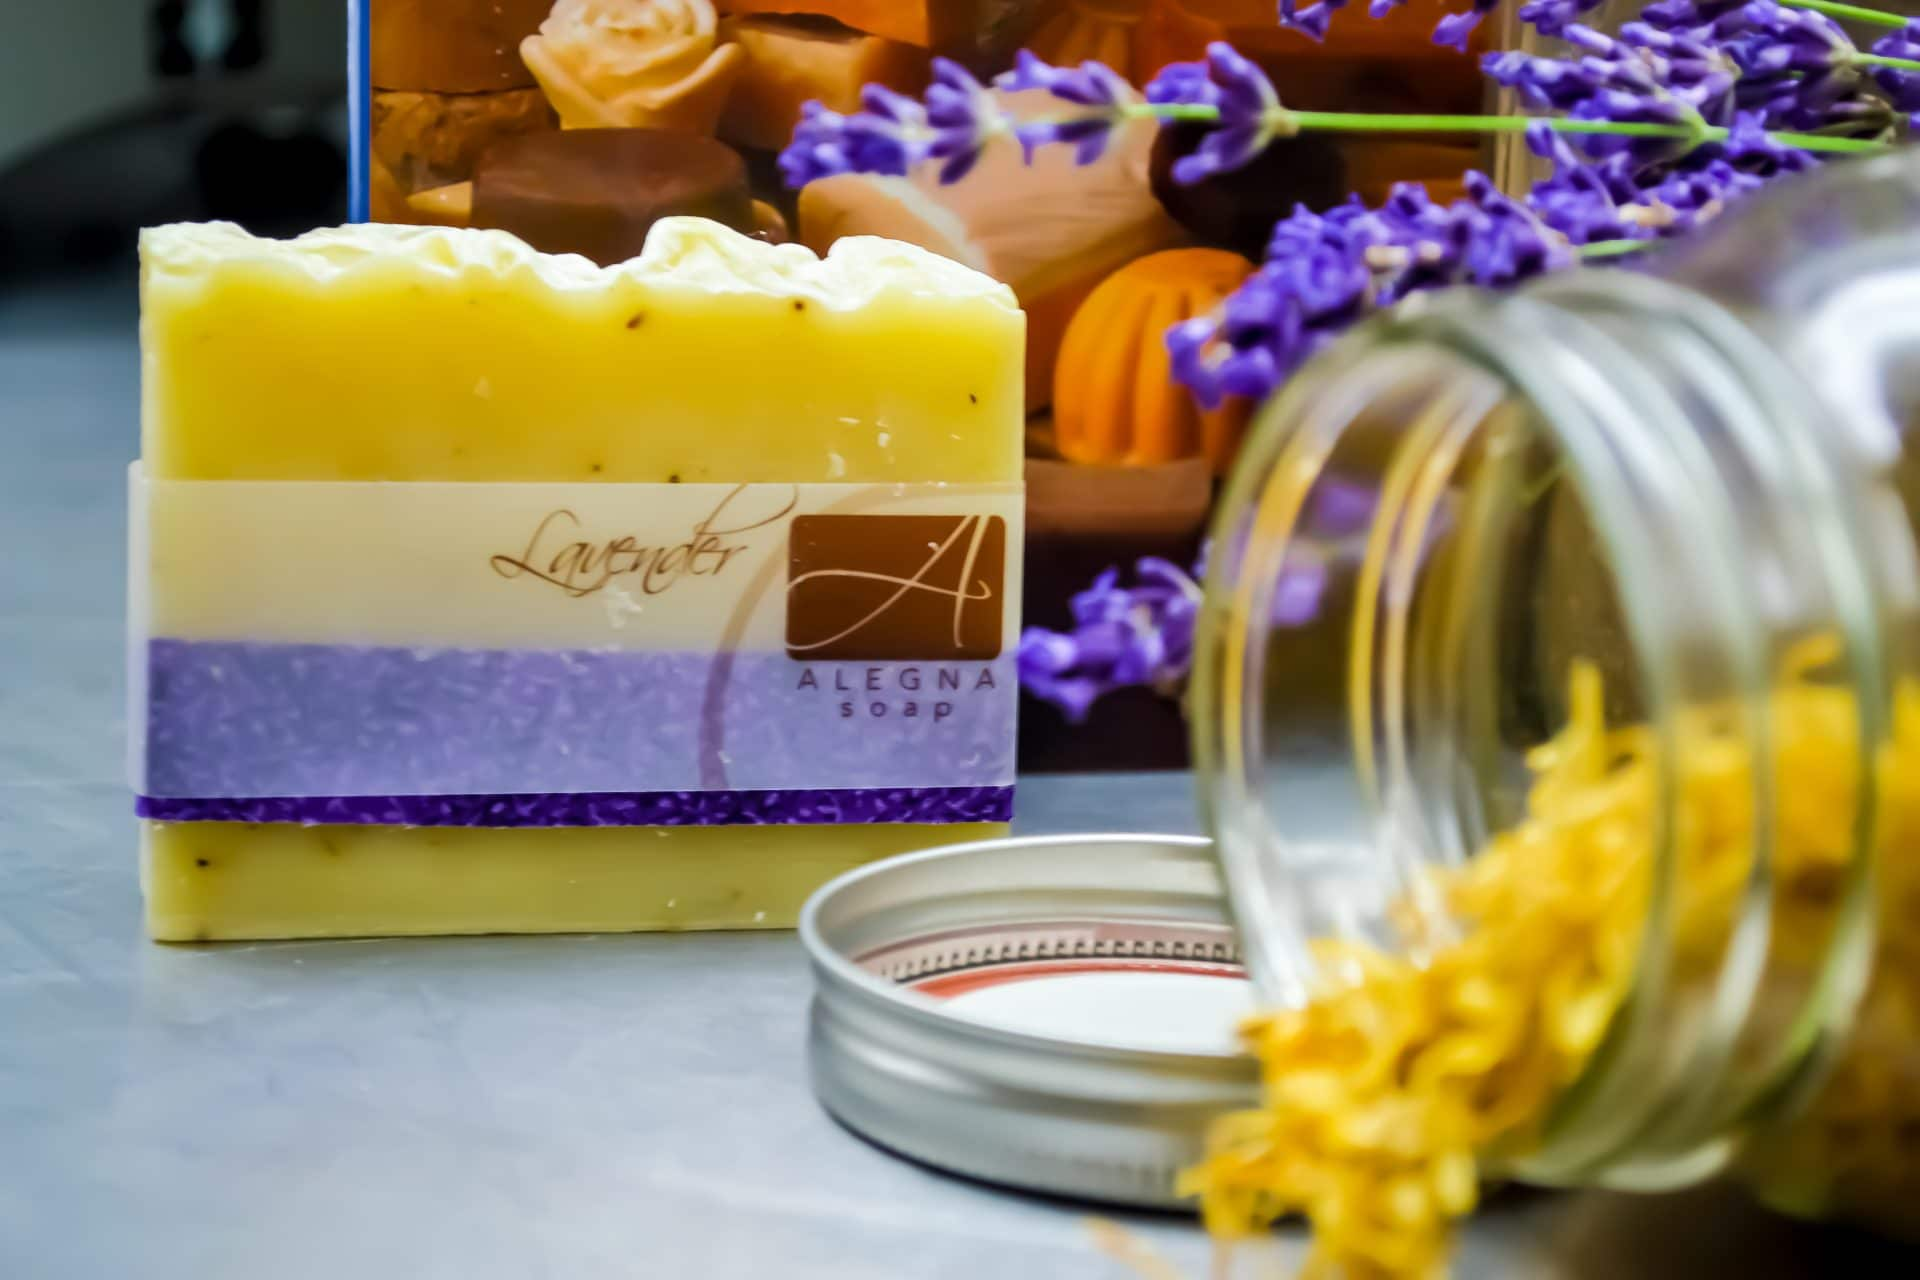 Alegna Soap® Lavender Choose soap making oils